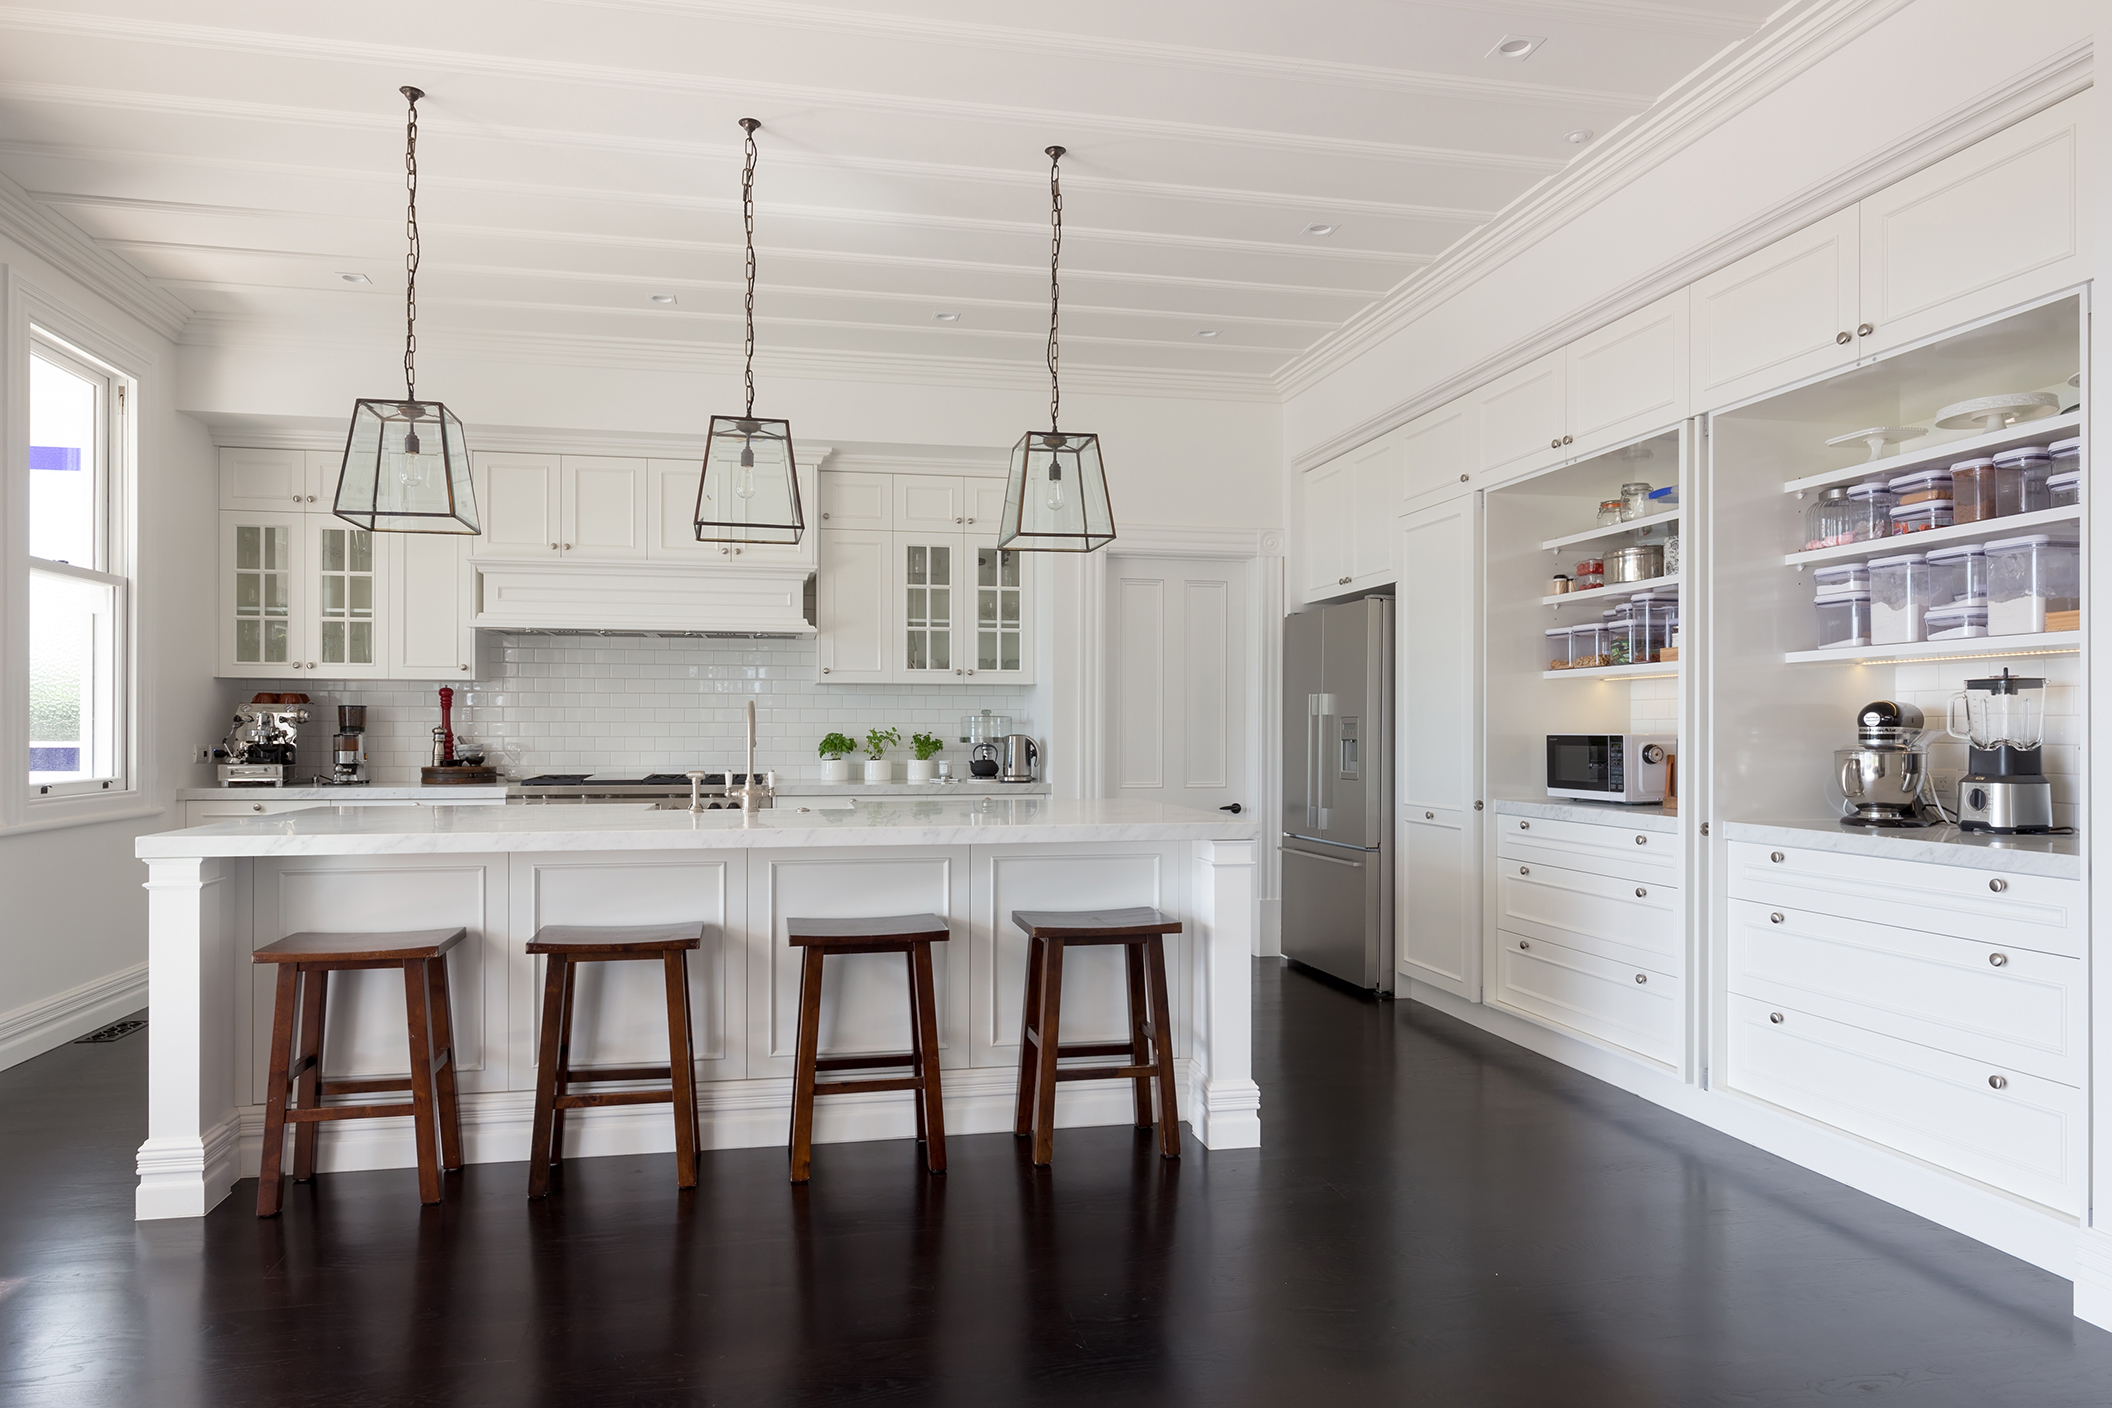 Http Www Archipro Co Nz Inspiration Library Building Award Winning Kitchen Shannon Pepper Design